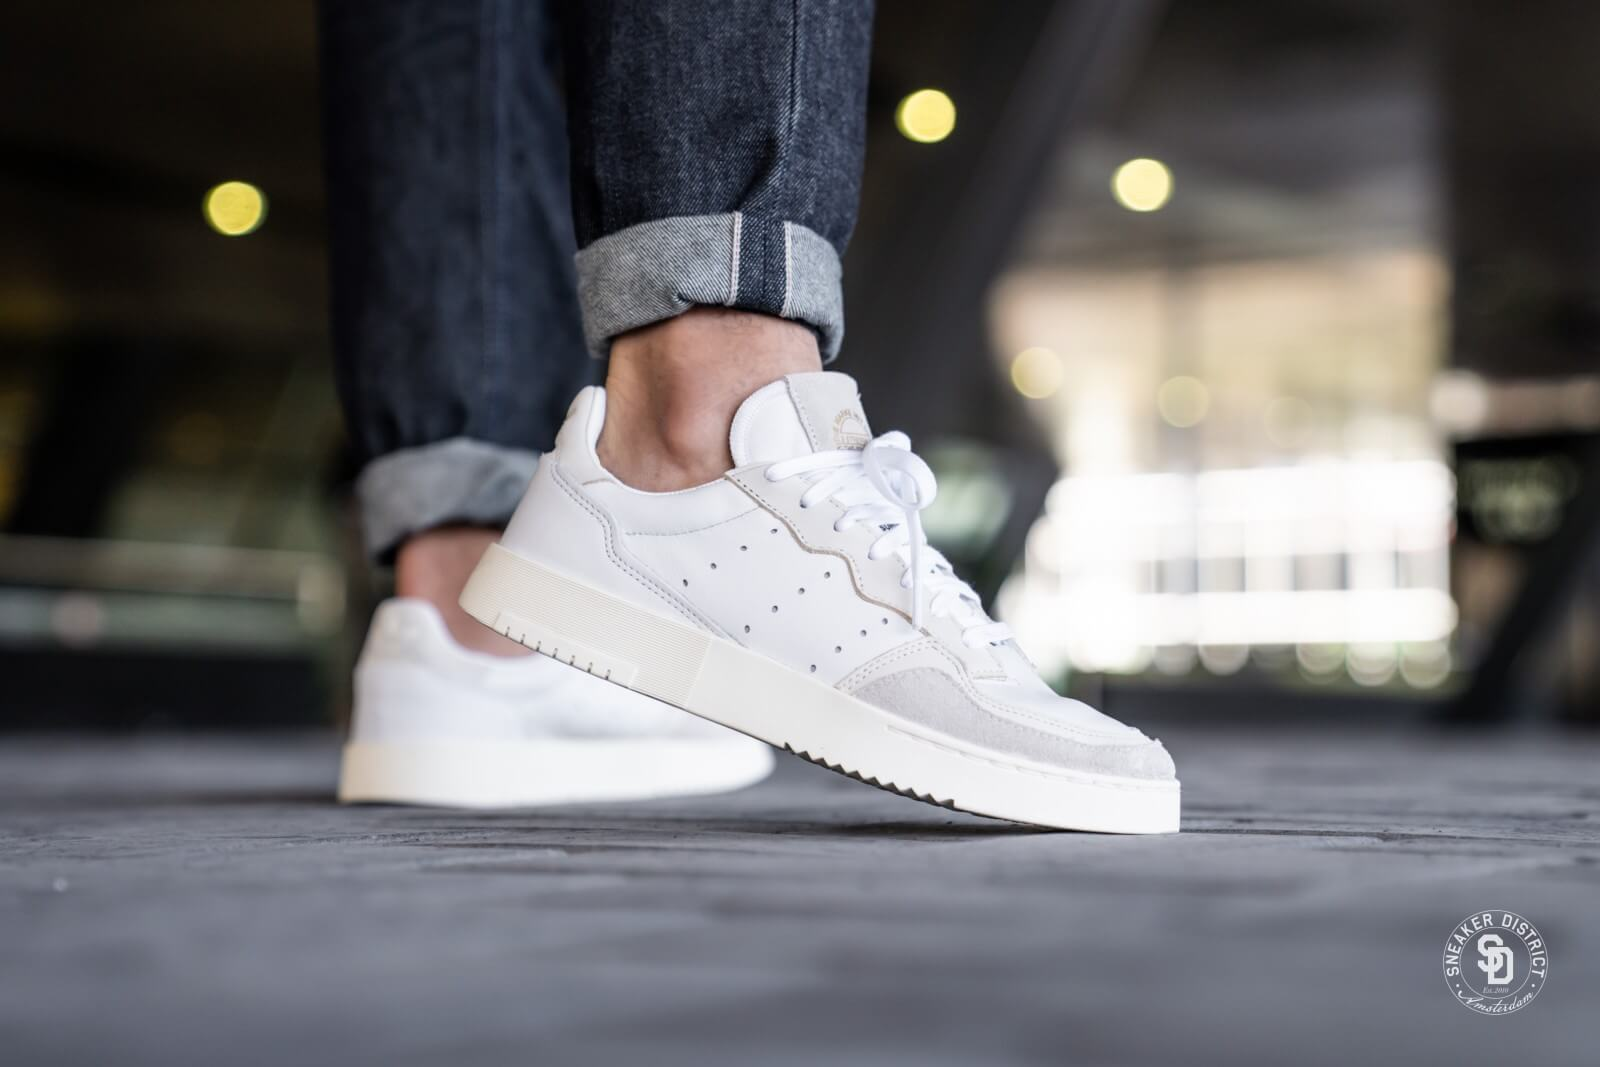 Adidas Supercourt Crystal White/Core White - EE6024